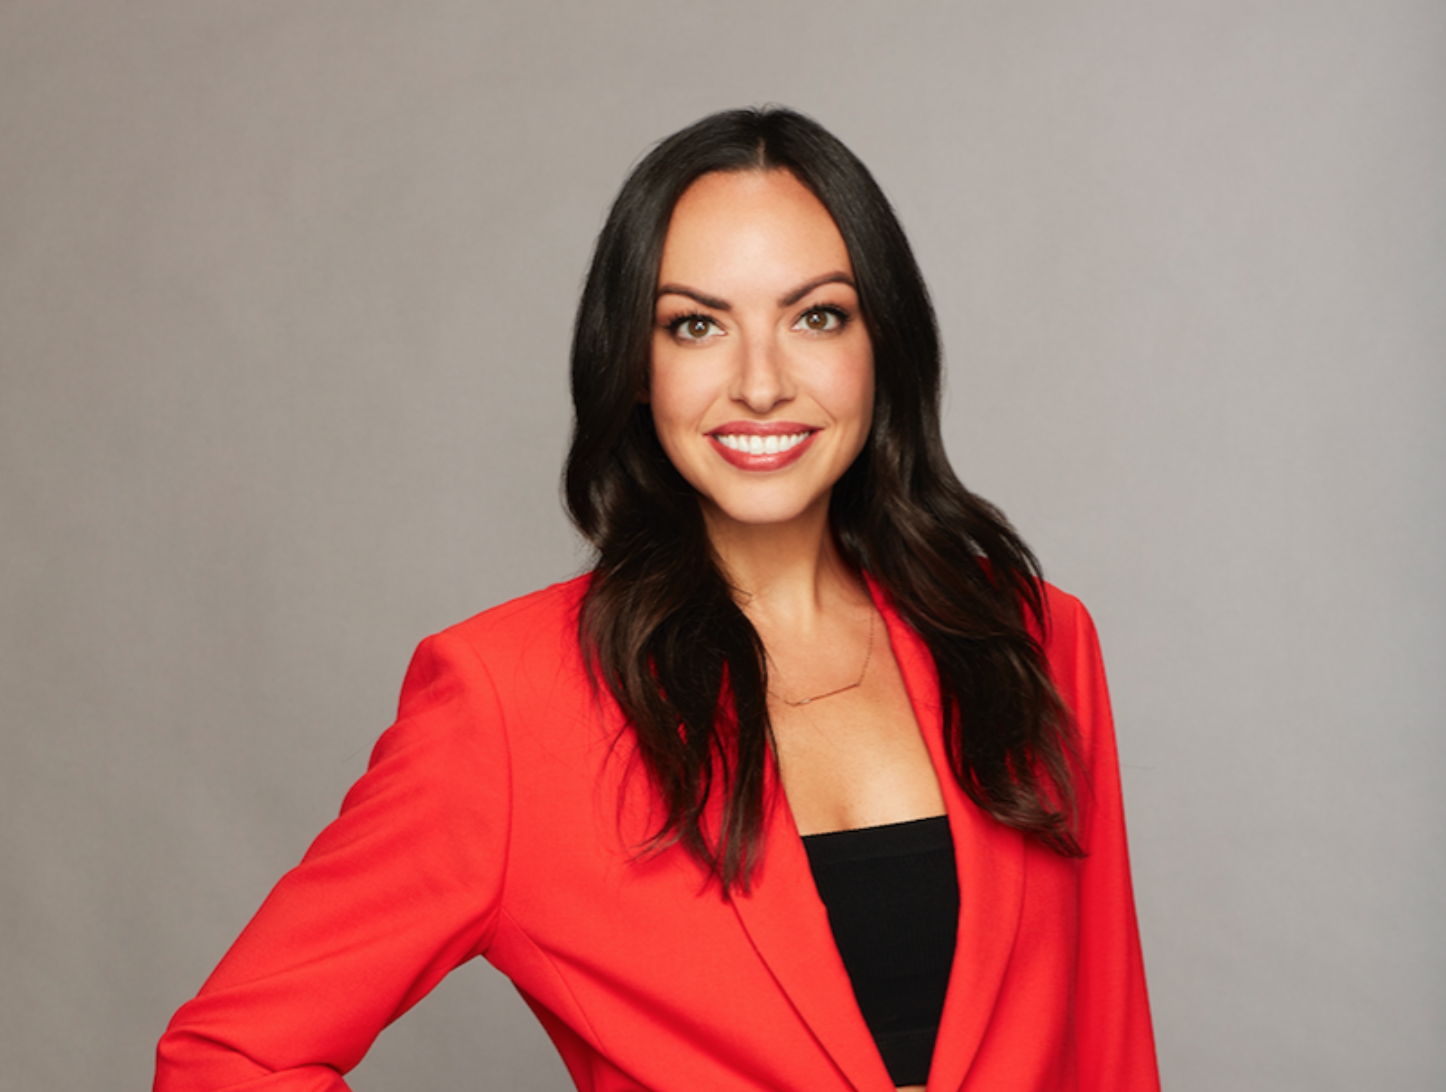 Bachelor Contestant Tracy Shapoff Controversy